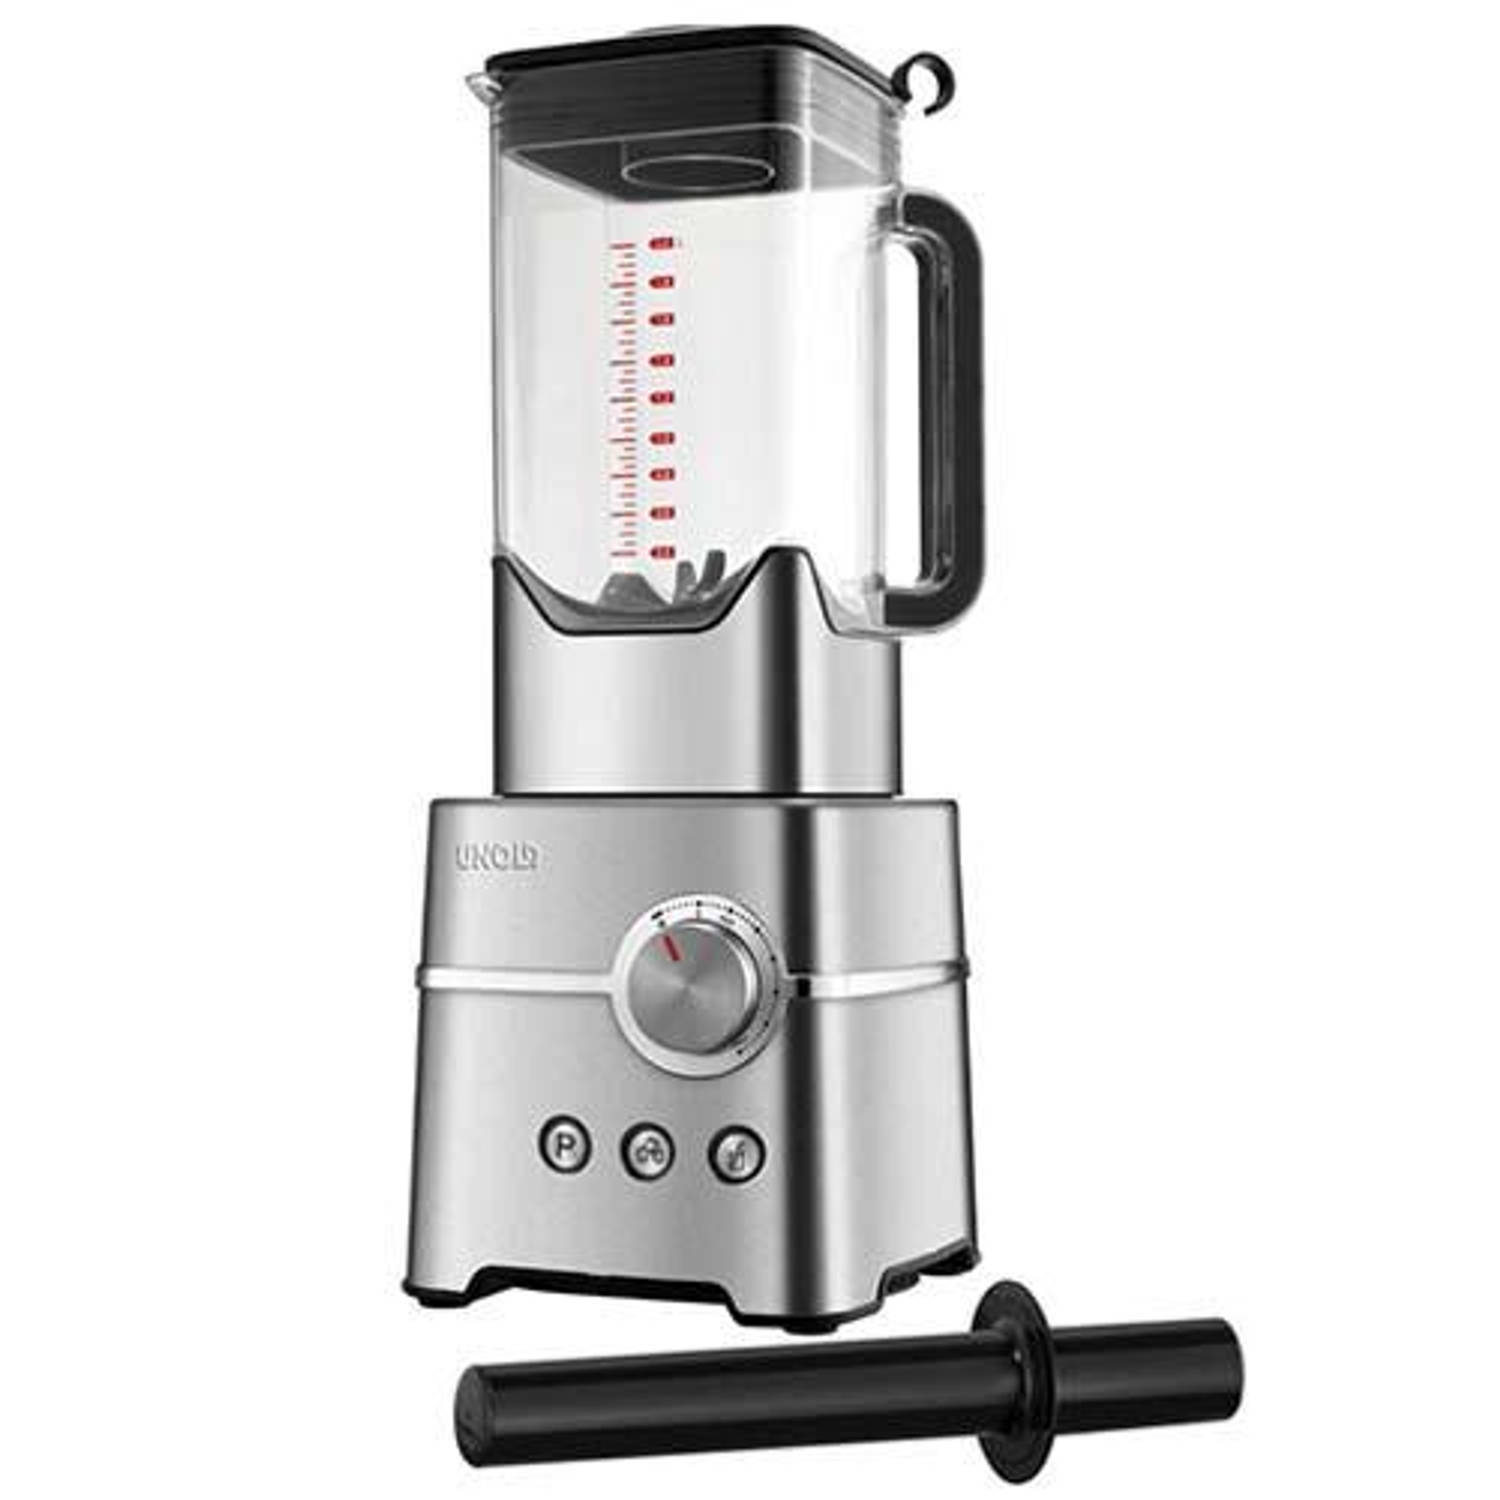 Power smoothie blender 78605 - unold